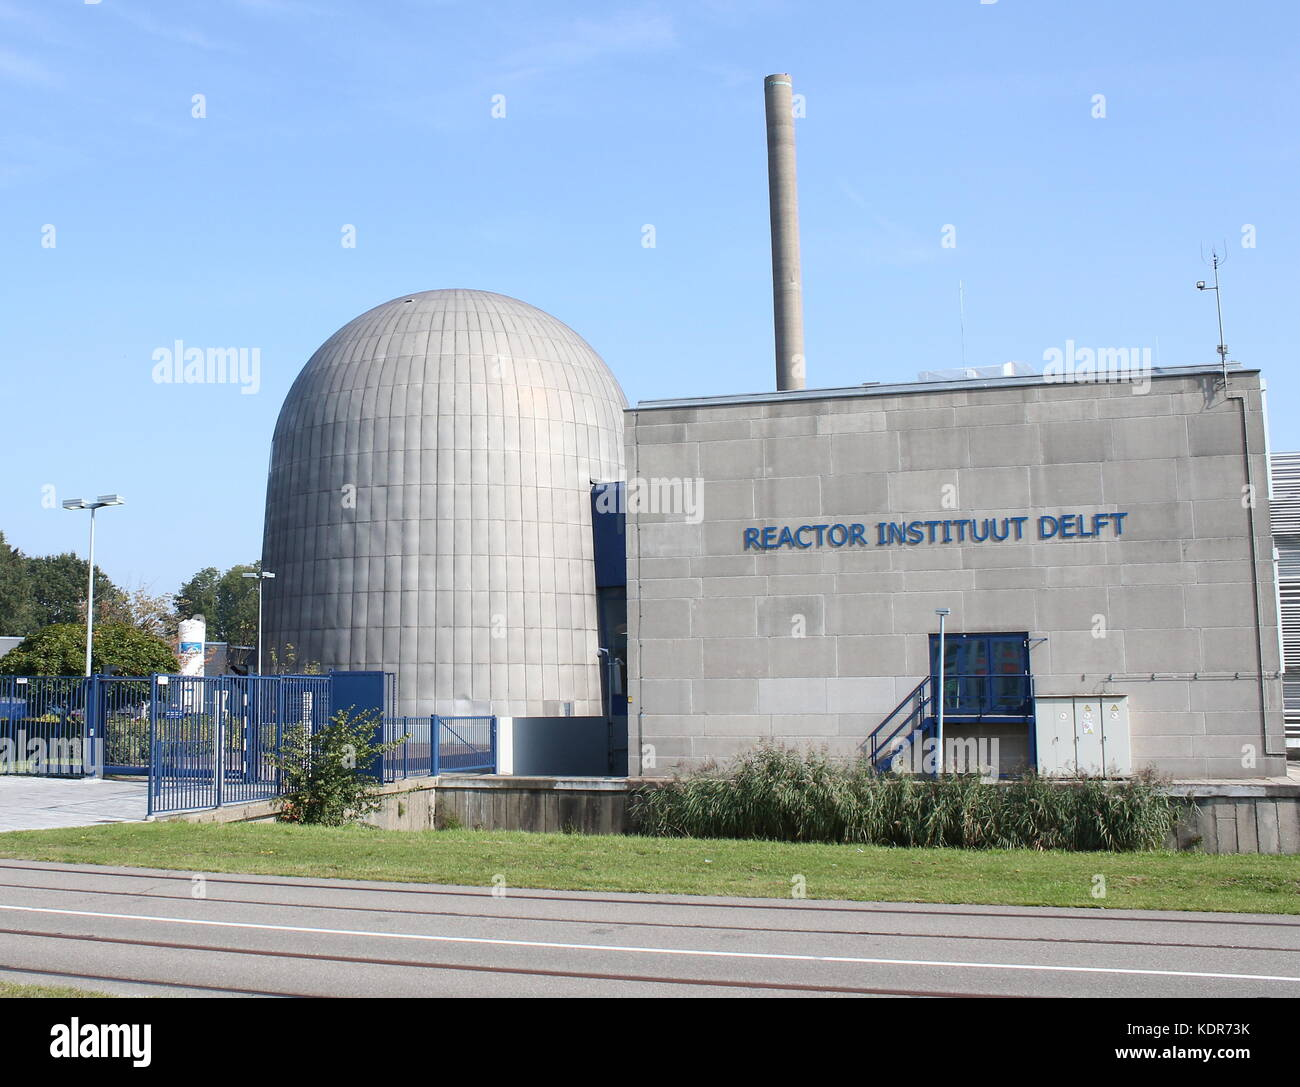 Reactor Institute Delft, nuclear research institute at the campus of Delft University of Technology in Delft, Netherlands - Stock Image